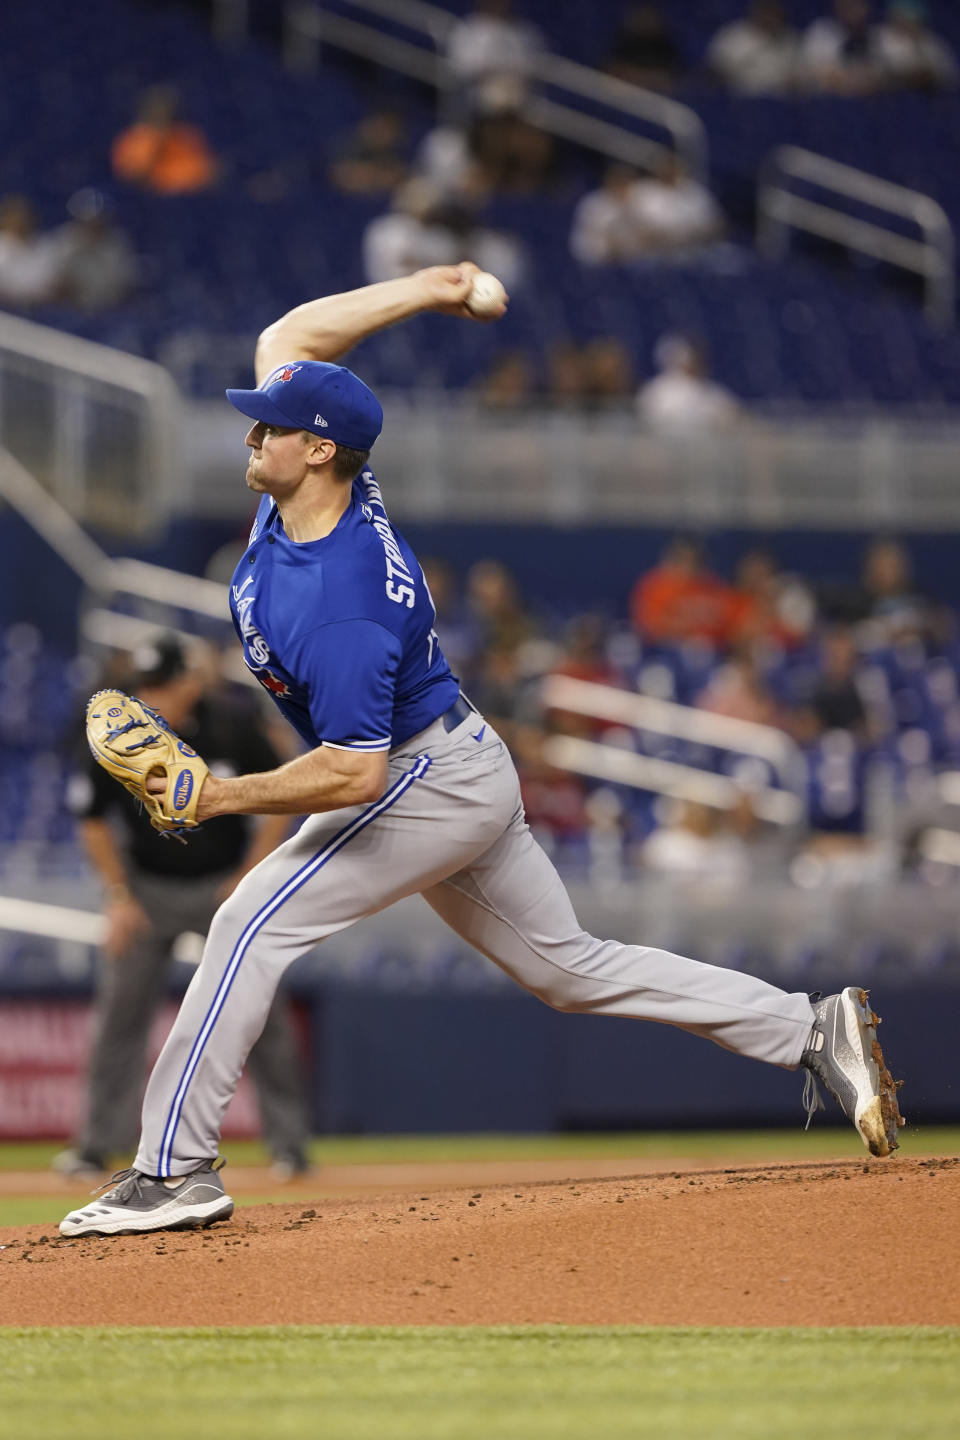 Toronto Blue Jays starting pitcher Ross Stripling throws during the first inning of a baseball game against the Miami Marlins, Tuesday, June 22, 2021, in Miami. (AP Photo/Marta Lavandier)